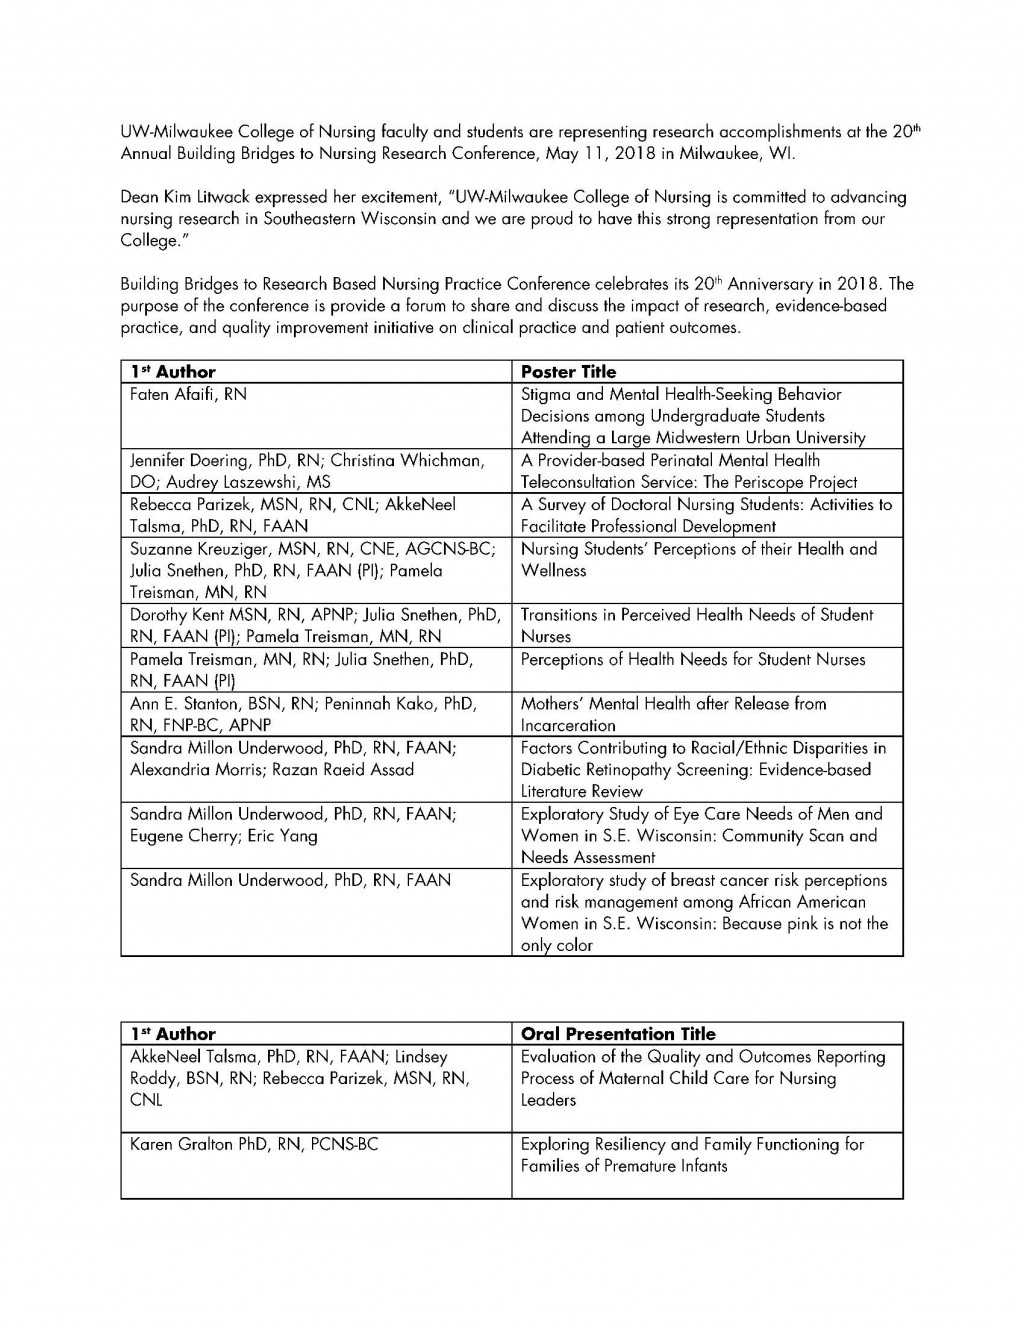 019 Nursing Research Paper Uwmweb Storycon 2018 Poster And Oral Authors Striking Sample Pdf Questions Writing Large